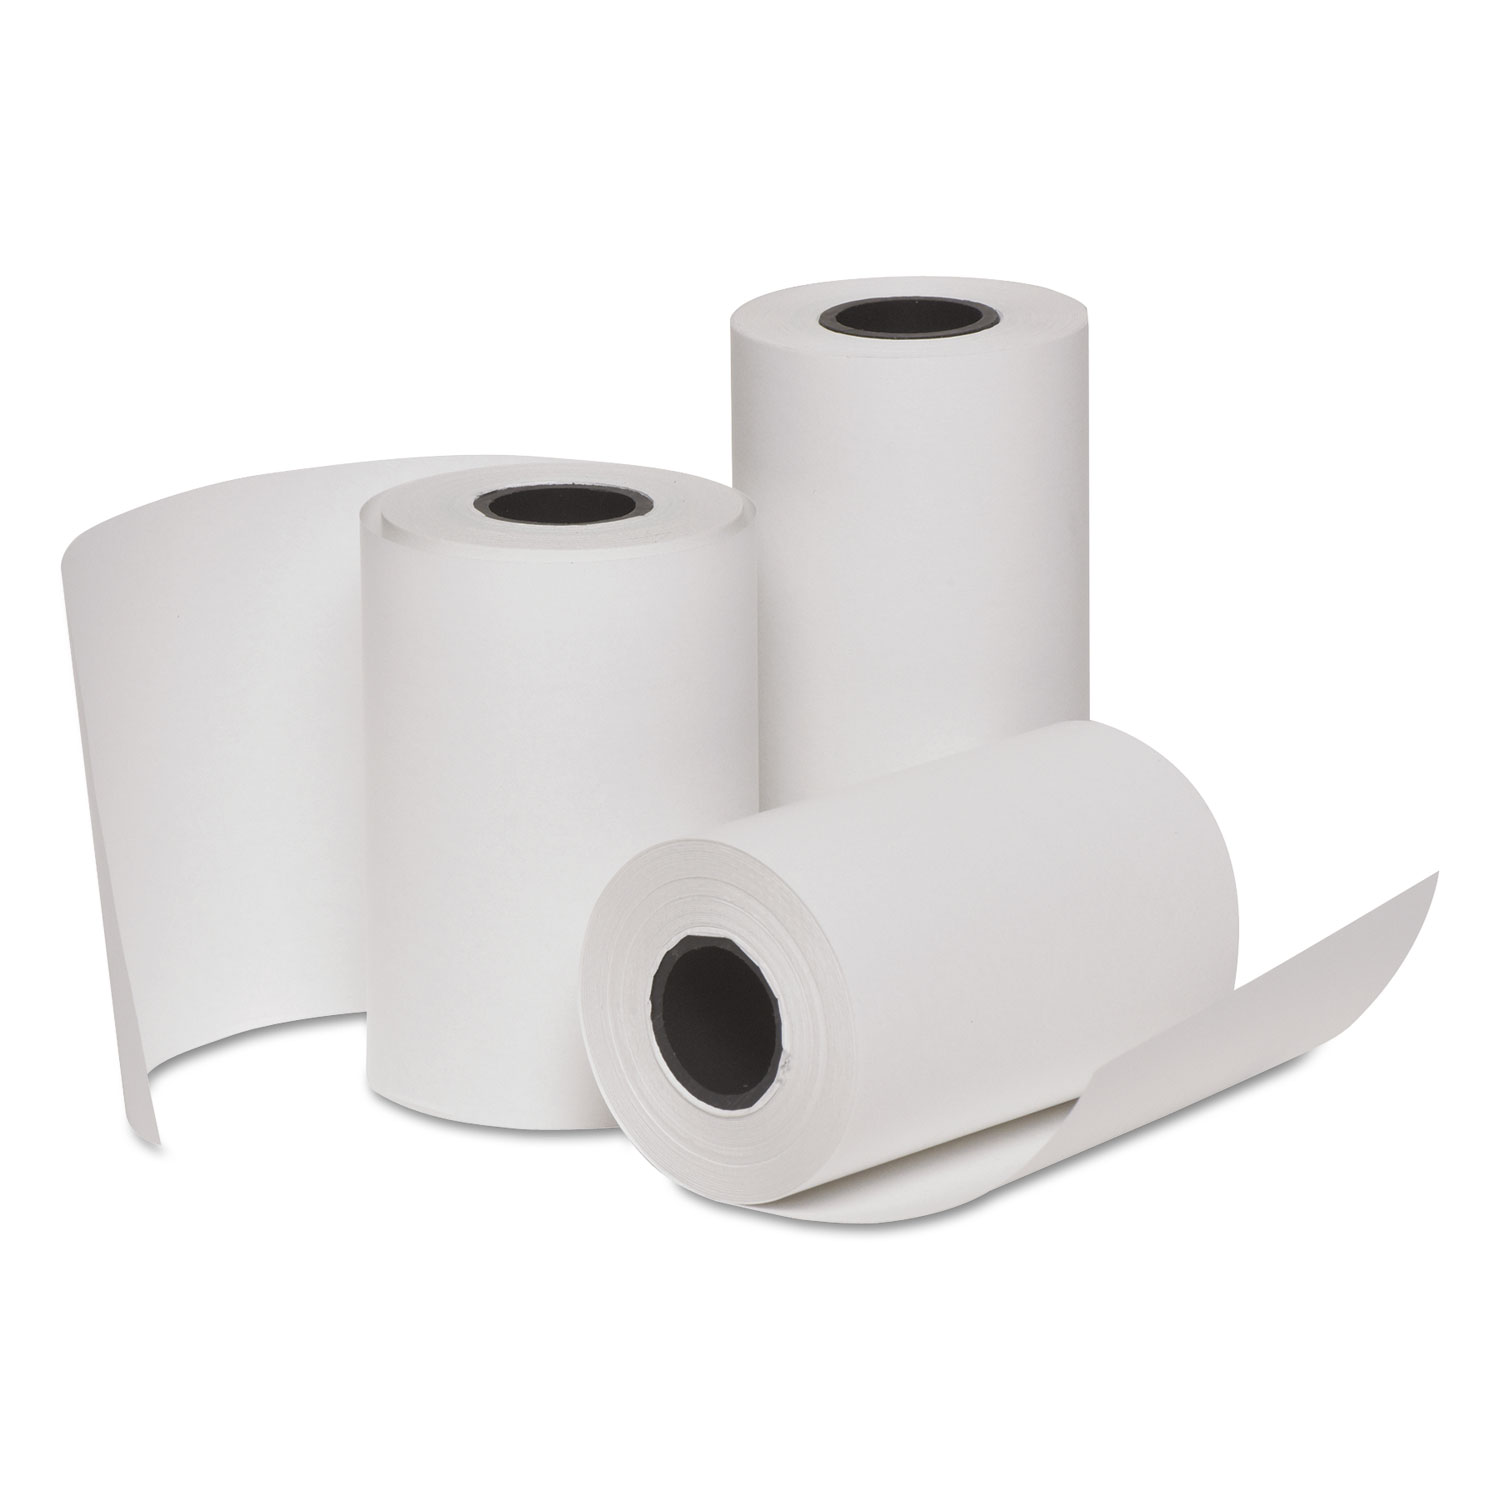 Deluxe Direct Thermal Printing Paper Rolls, 2 1/4 x 85 ft, 10 Rolls/PK